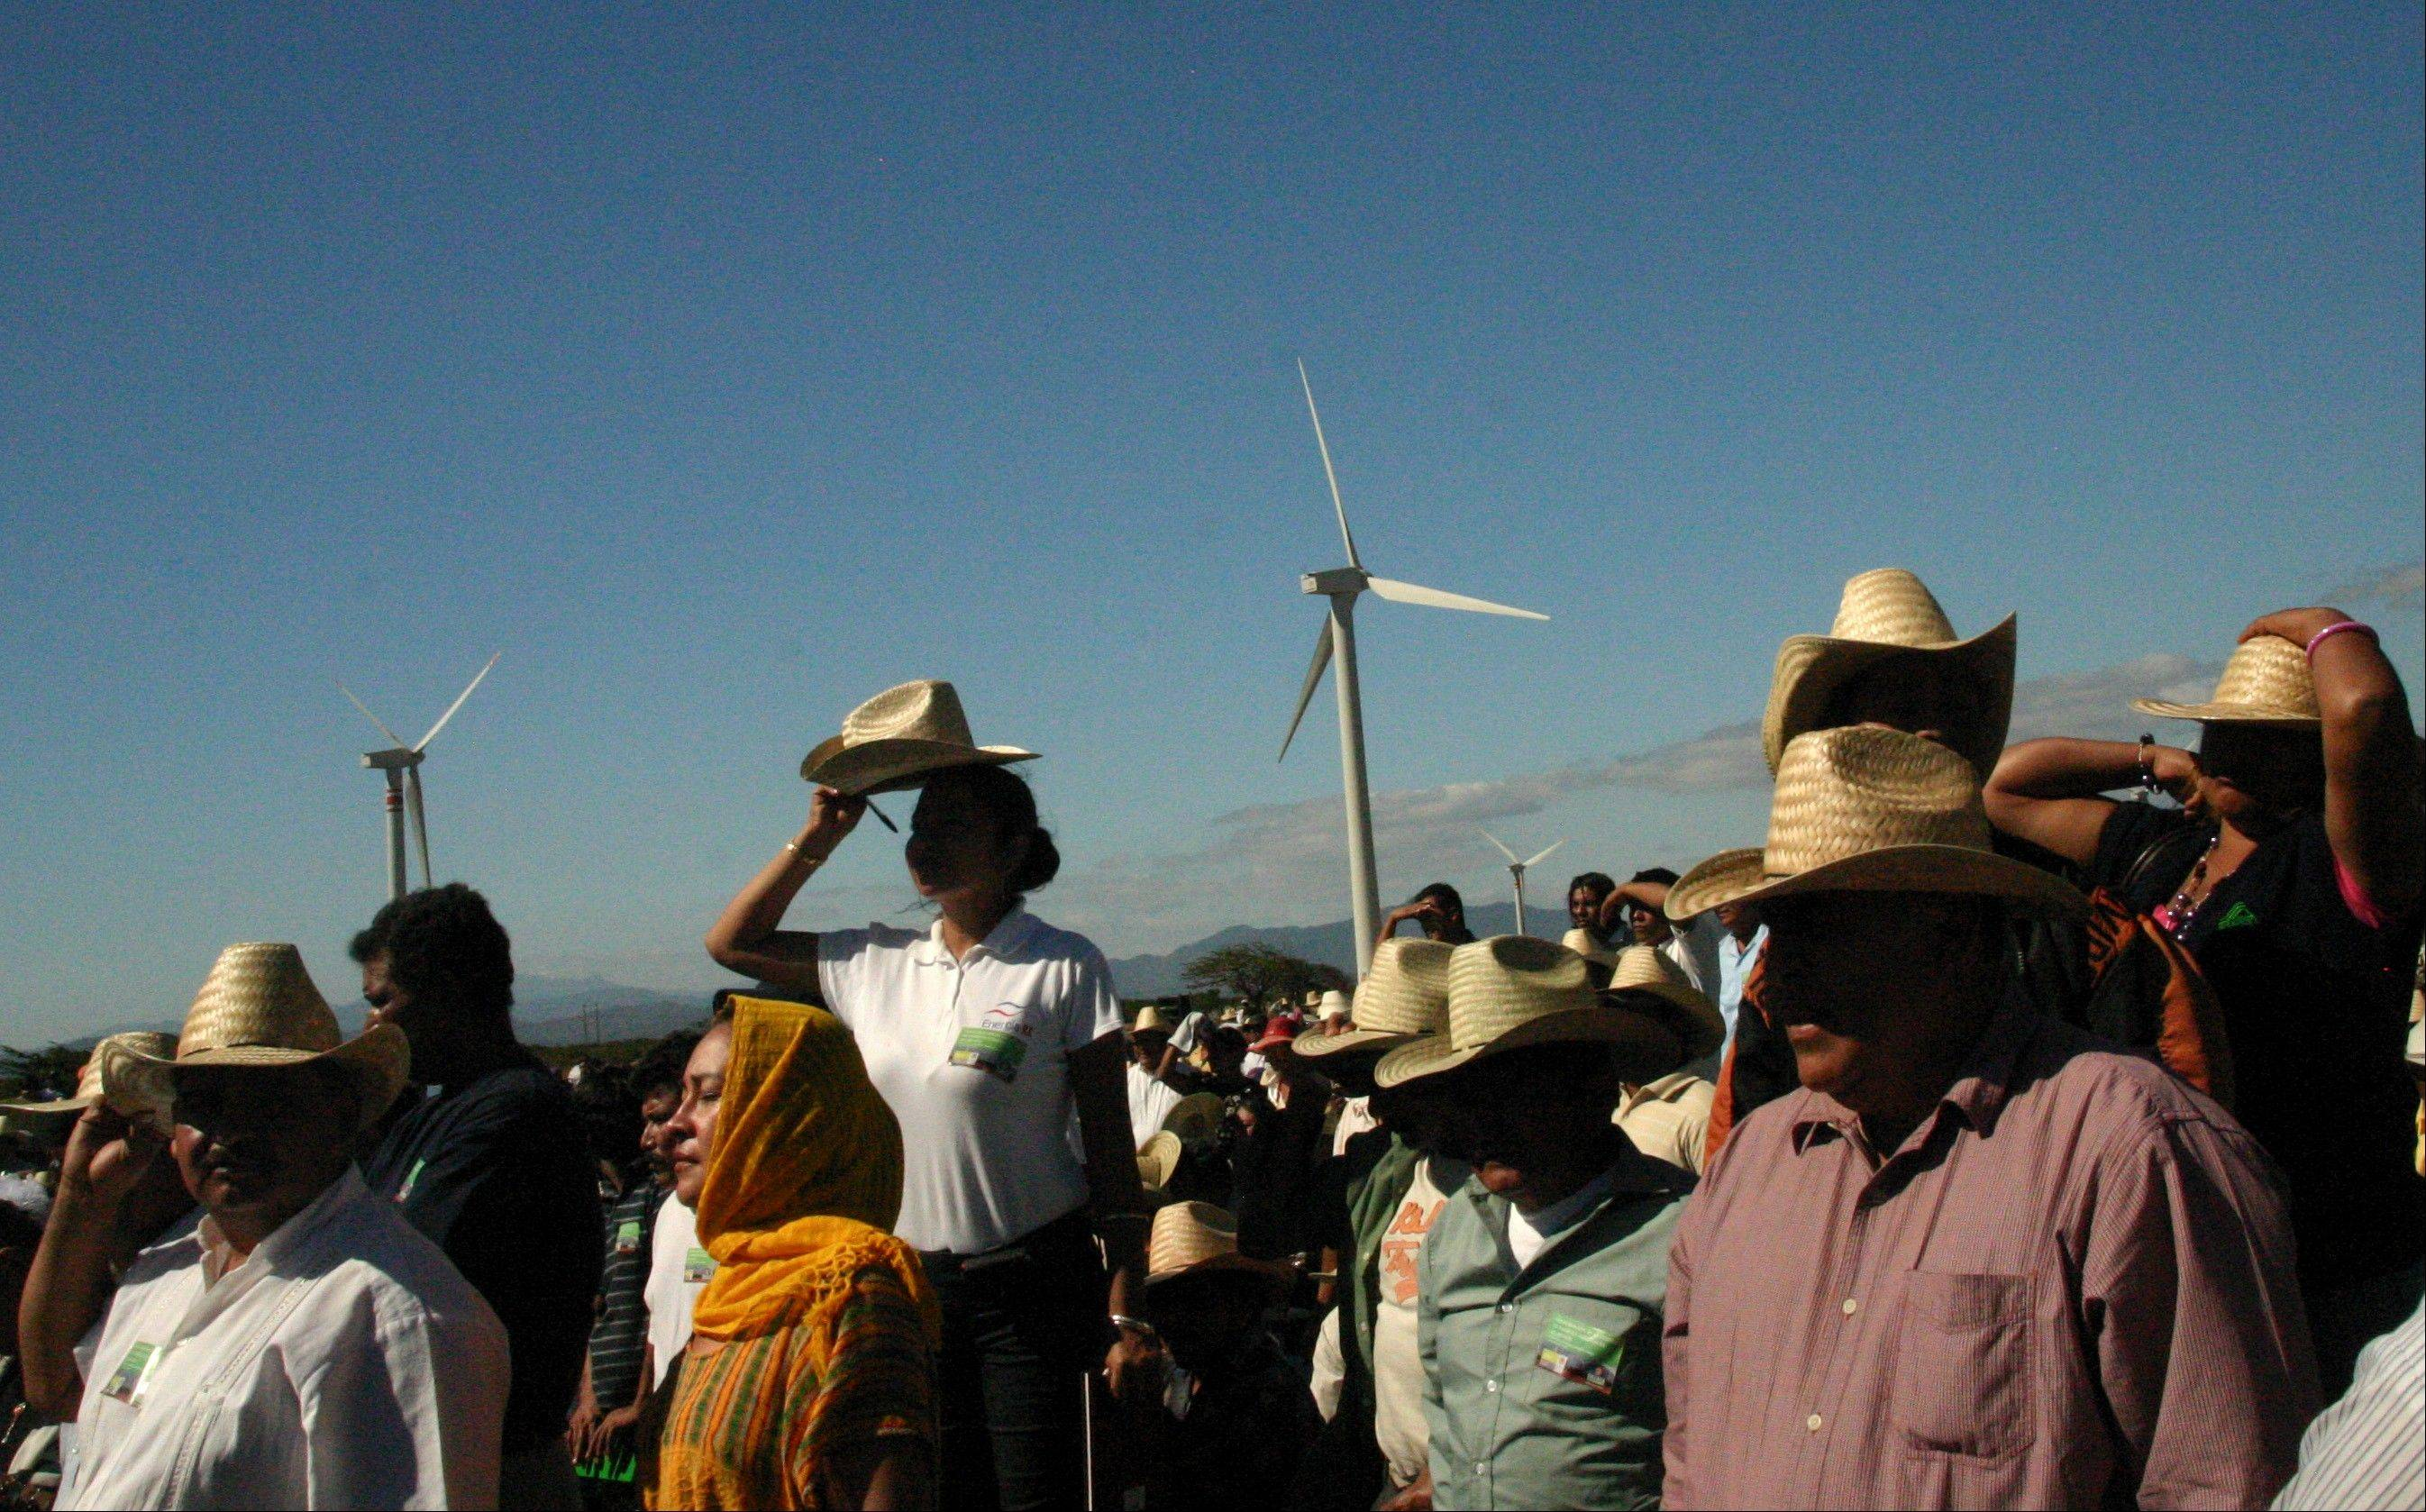 In this January 2009 photo, people watch during the inauguration of a new $550 million wind farm project in La Ventosa, Mexico, located on the narrow isthmus between the Gulf of Mexico and the Pacific Ocean. Mexican President Felipe Calderon has made the inauguration of wind parks one of the main focuses of his administration's ambitious pledge to cut Mexico's carbon emissions by 30 percent by 2020, and once again Tuesday as he has done before, he stopped in the state of Oaxaca to inaugurate a new clutch of wind turbines.